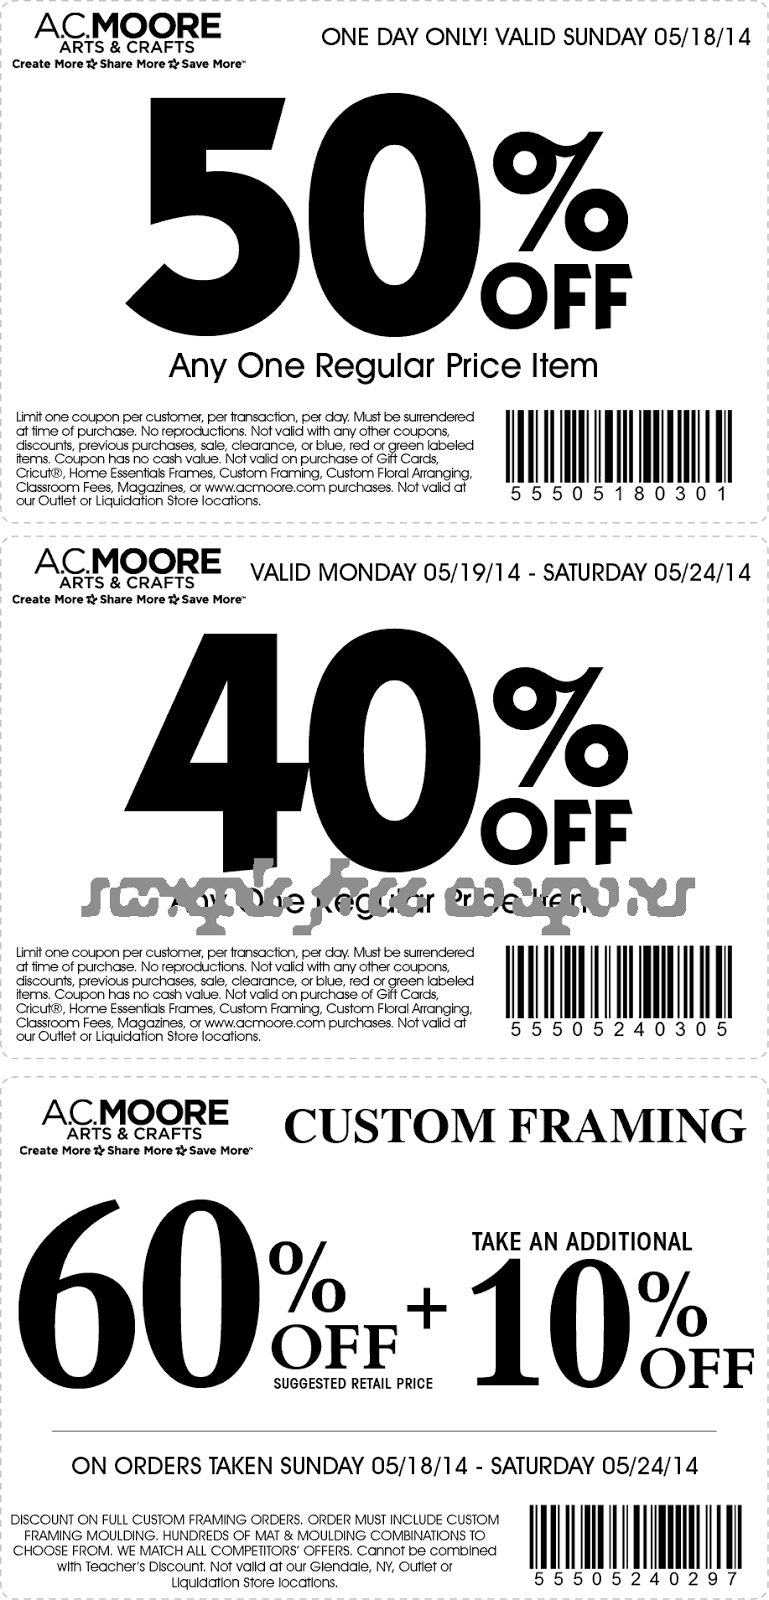 graphic relating to Ac Moore Printable Coupon named Ac moore printable discount codes 2018 : Ninja cafe nyc discount coupons